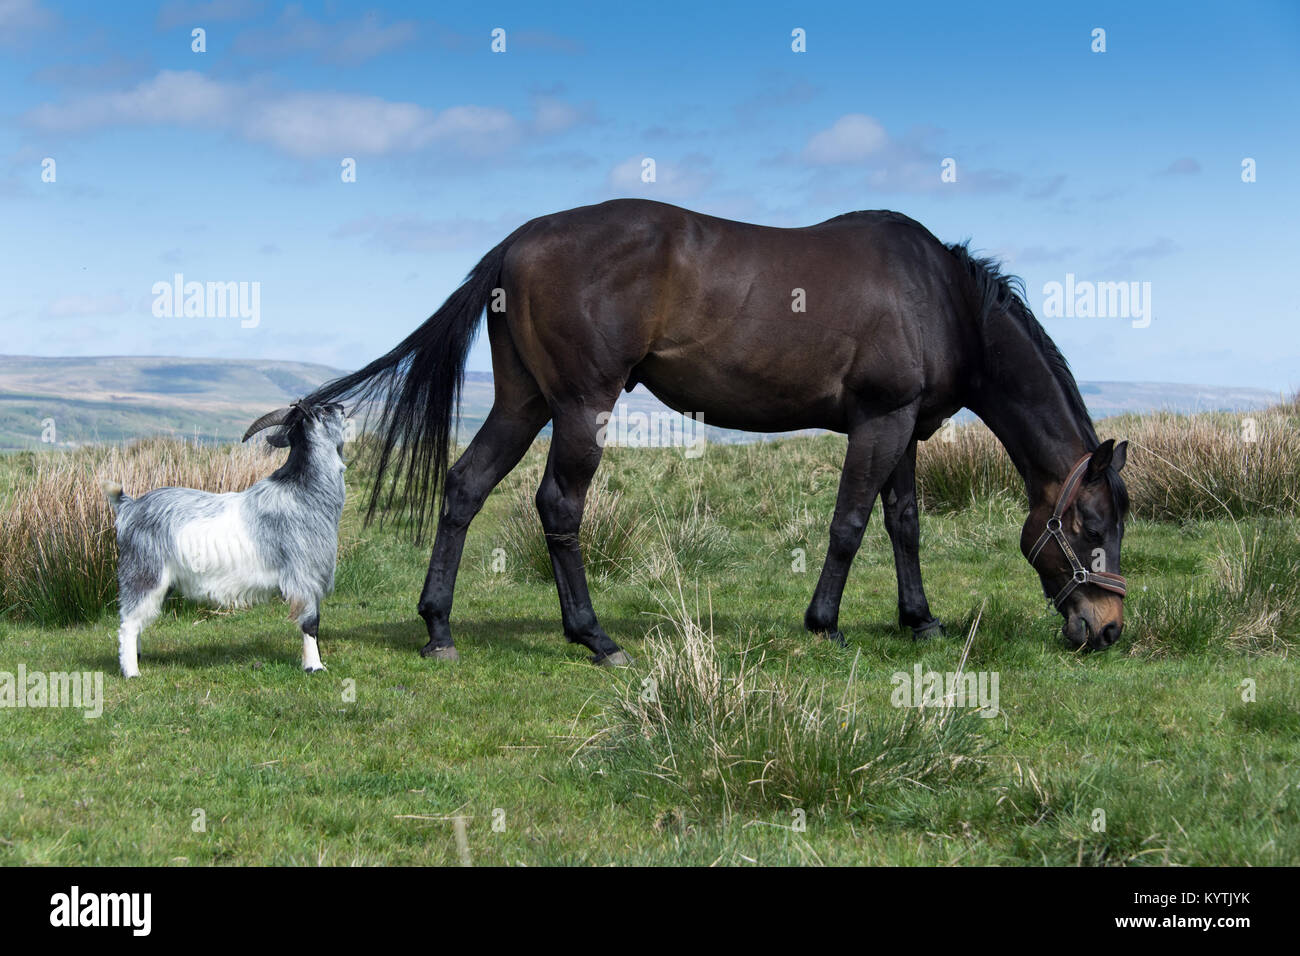 Throughbred  ex racehorse in paddock with companion goat. North Yorkshire, UK. - Stock Image